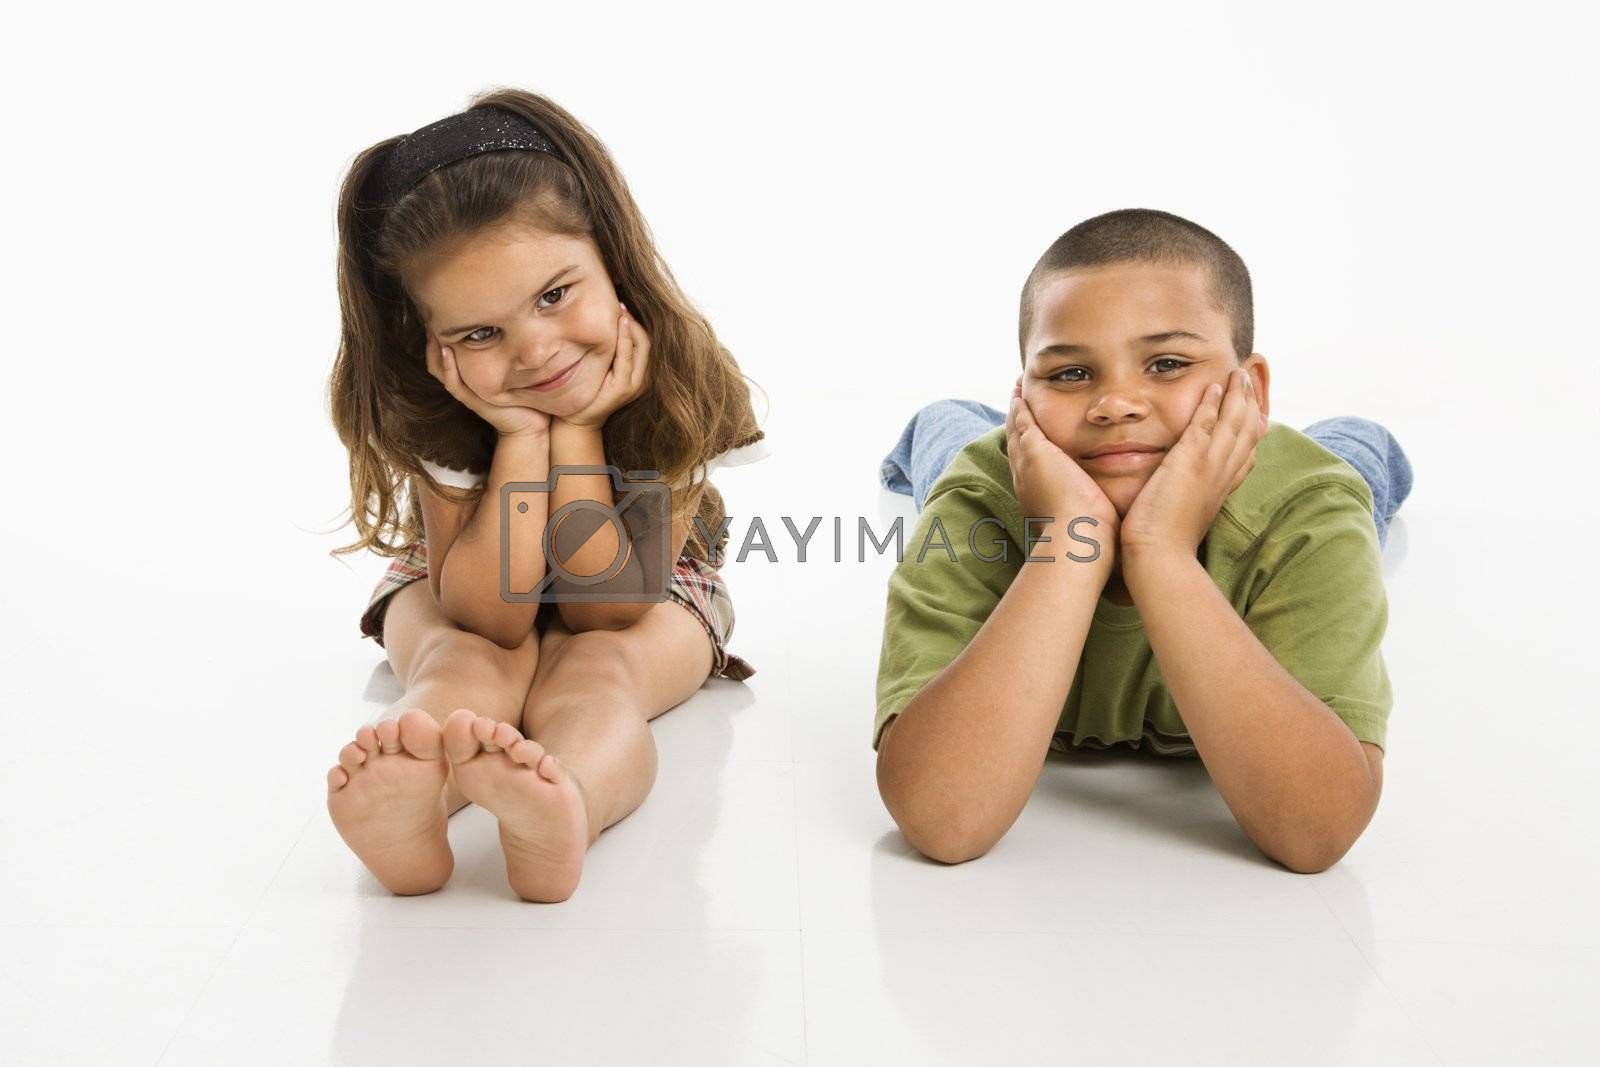 Hispanic brother and sister sitting smiling at viewer.